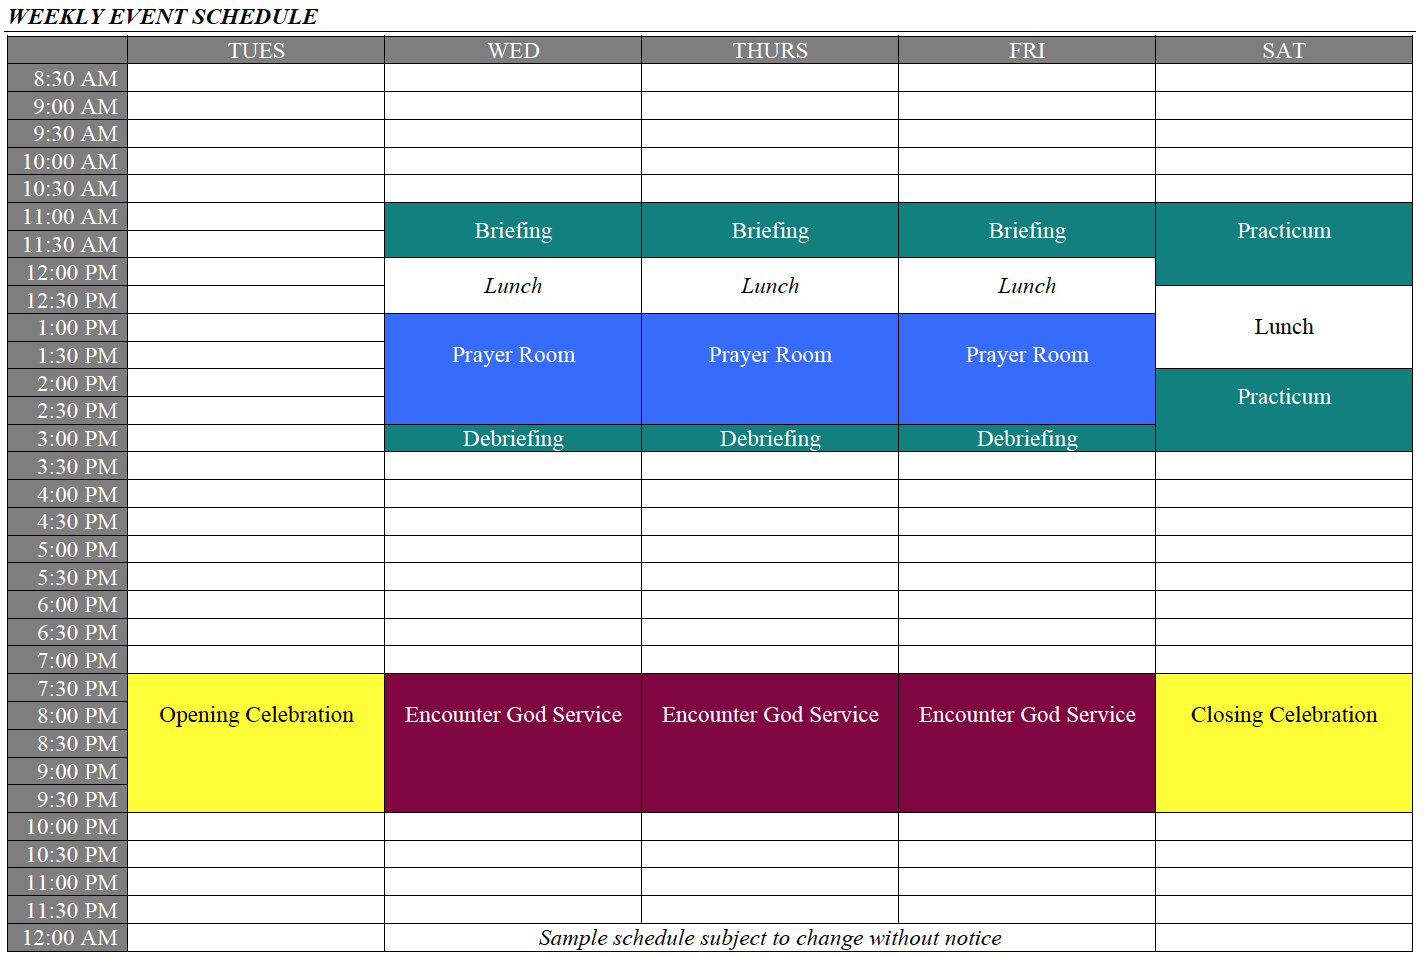 Ignite St. Kitts Event Schedule